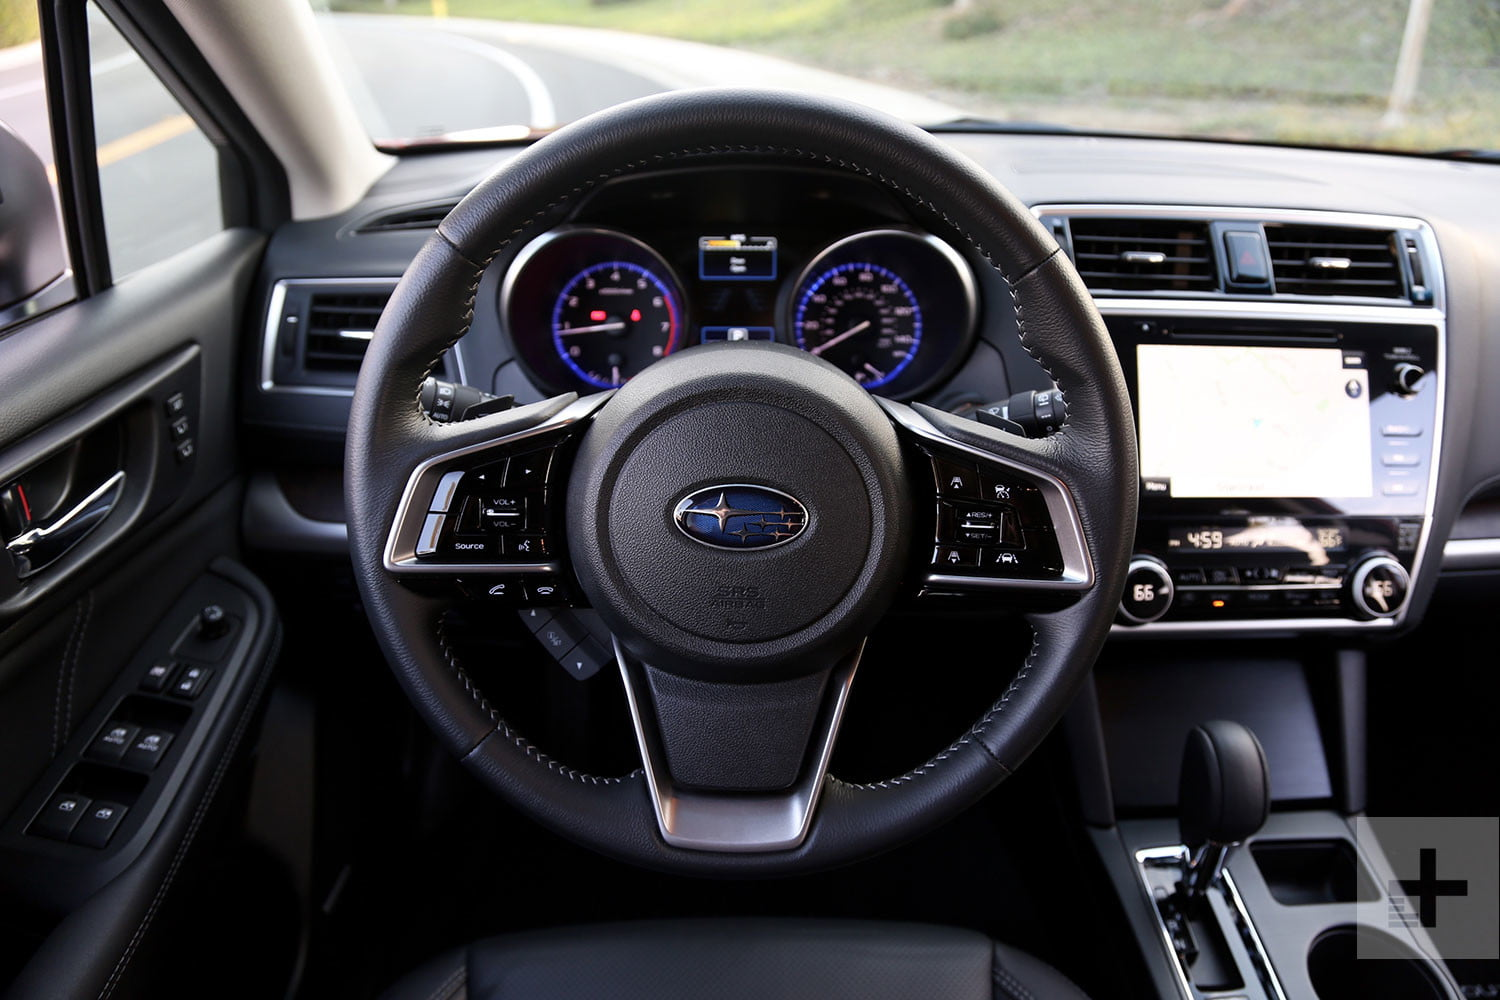 2018 Subaru Outback Review | Pictures, Specs, Pricing